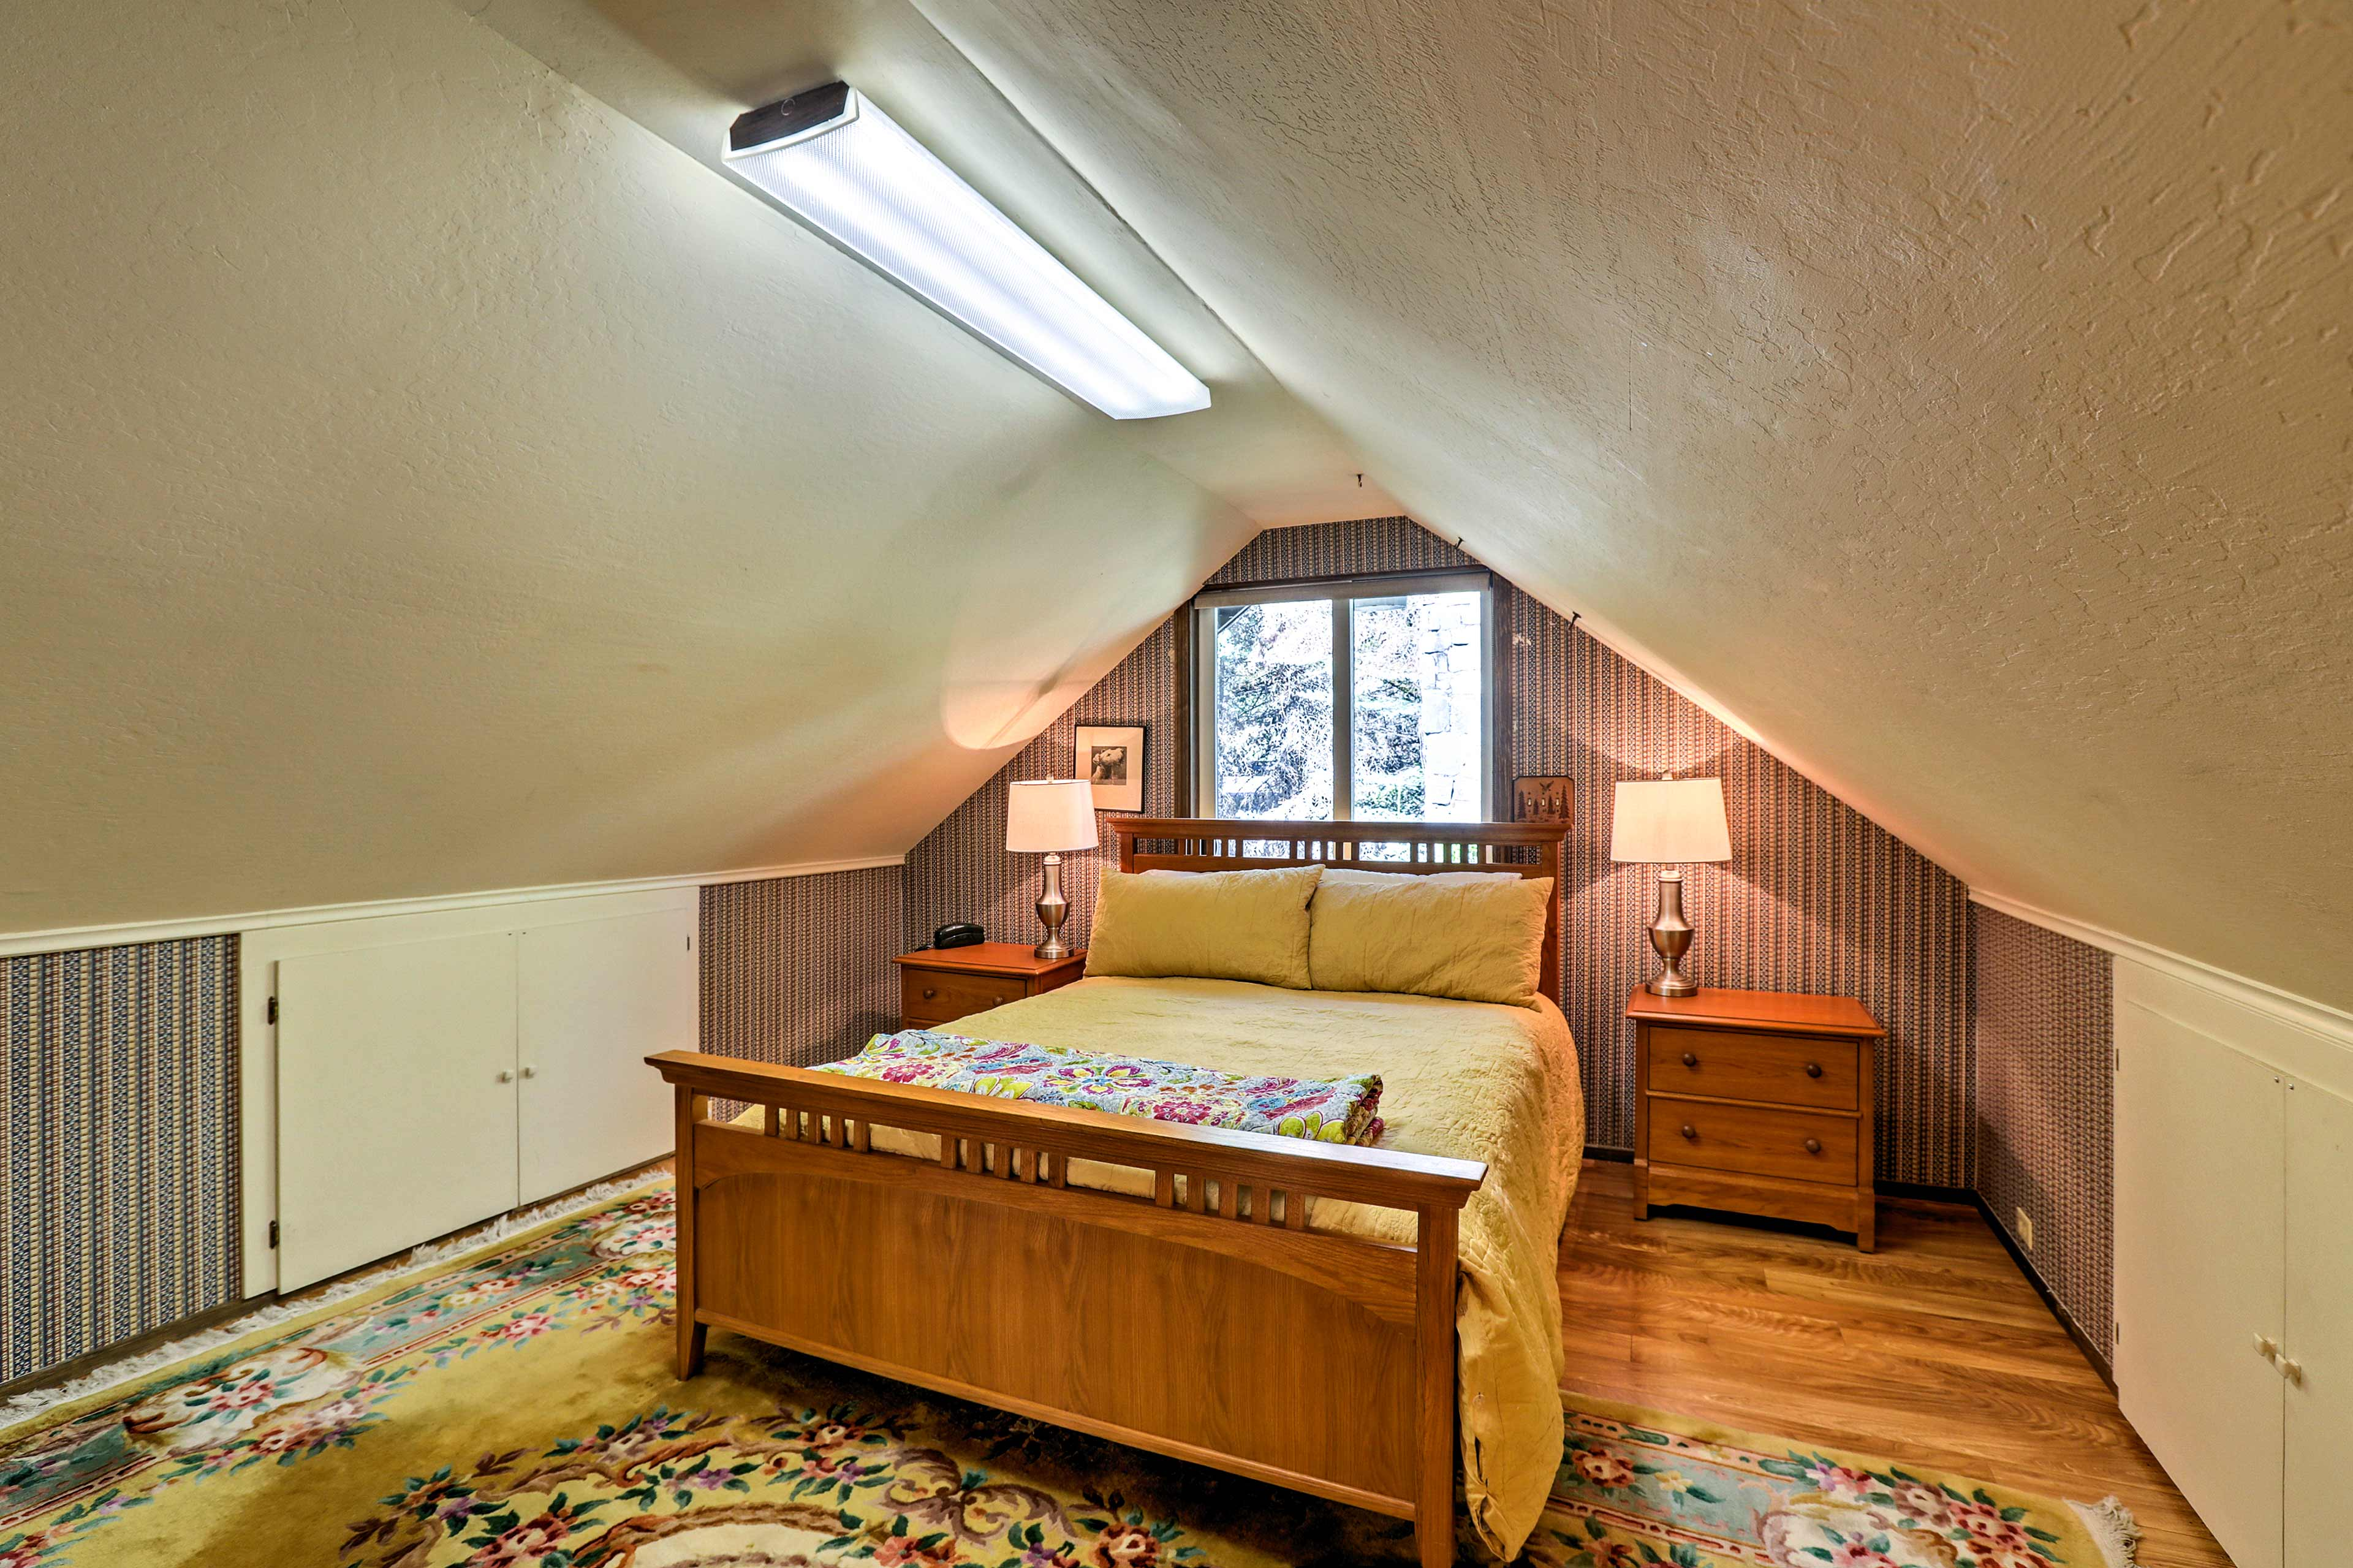 Upstairs in the loft-style bedroom, you'll find optimum sleeping accommodations.